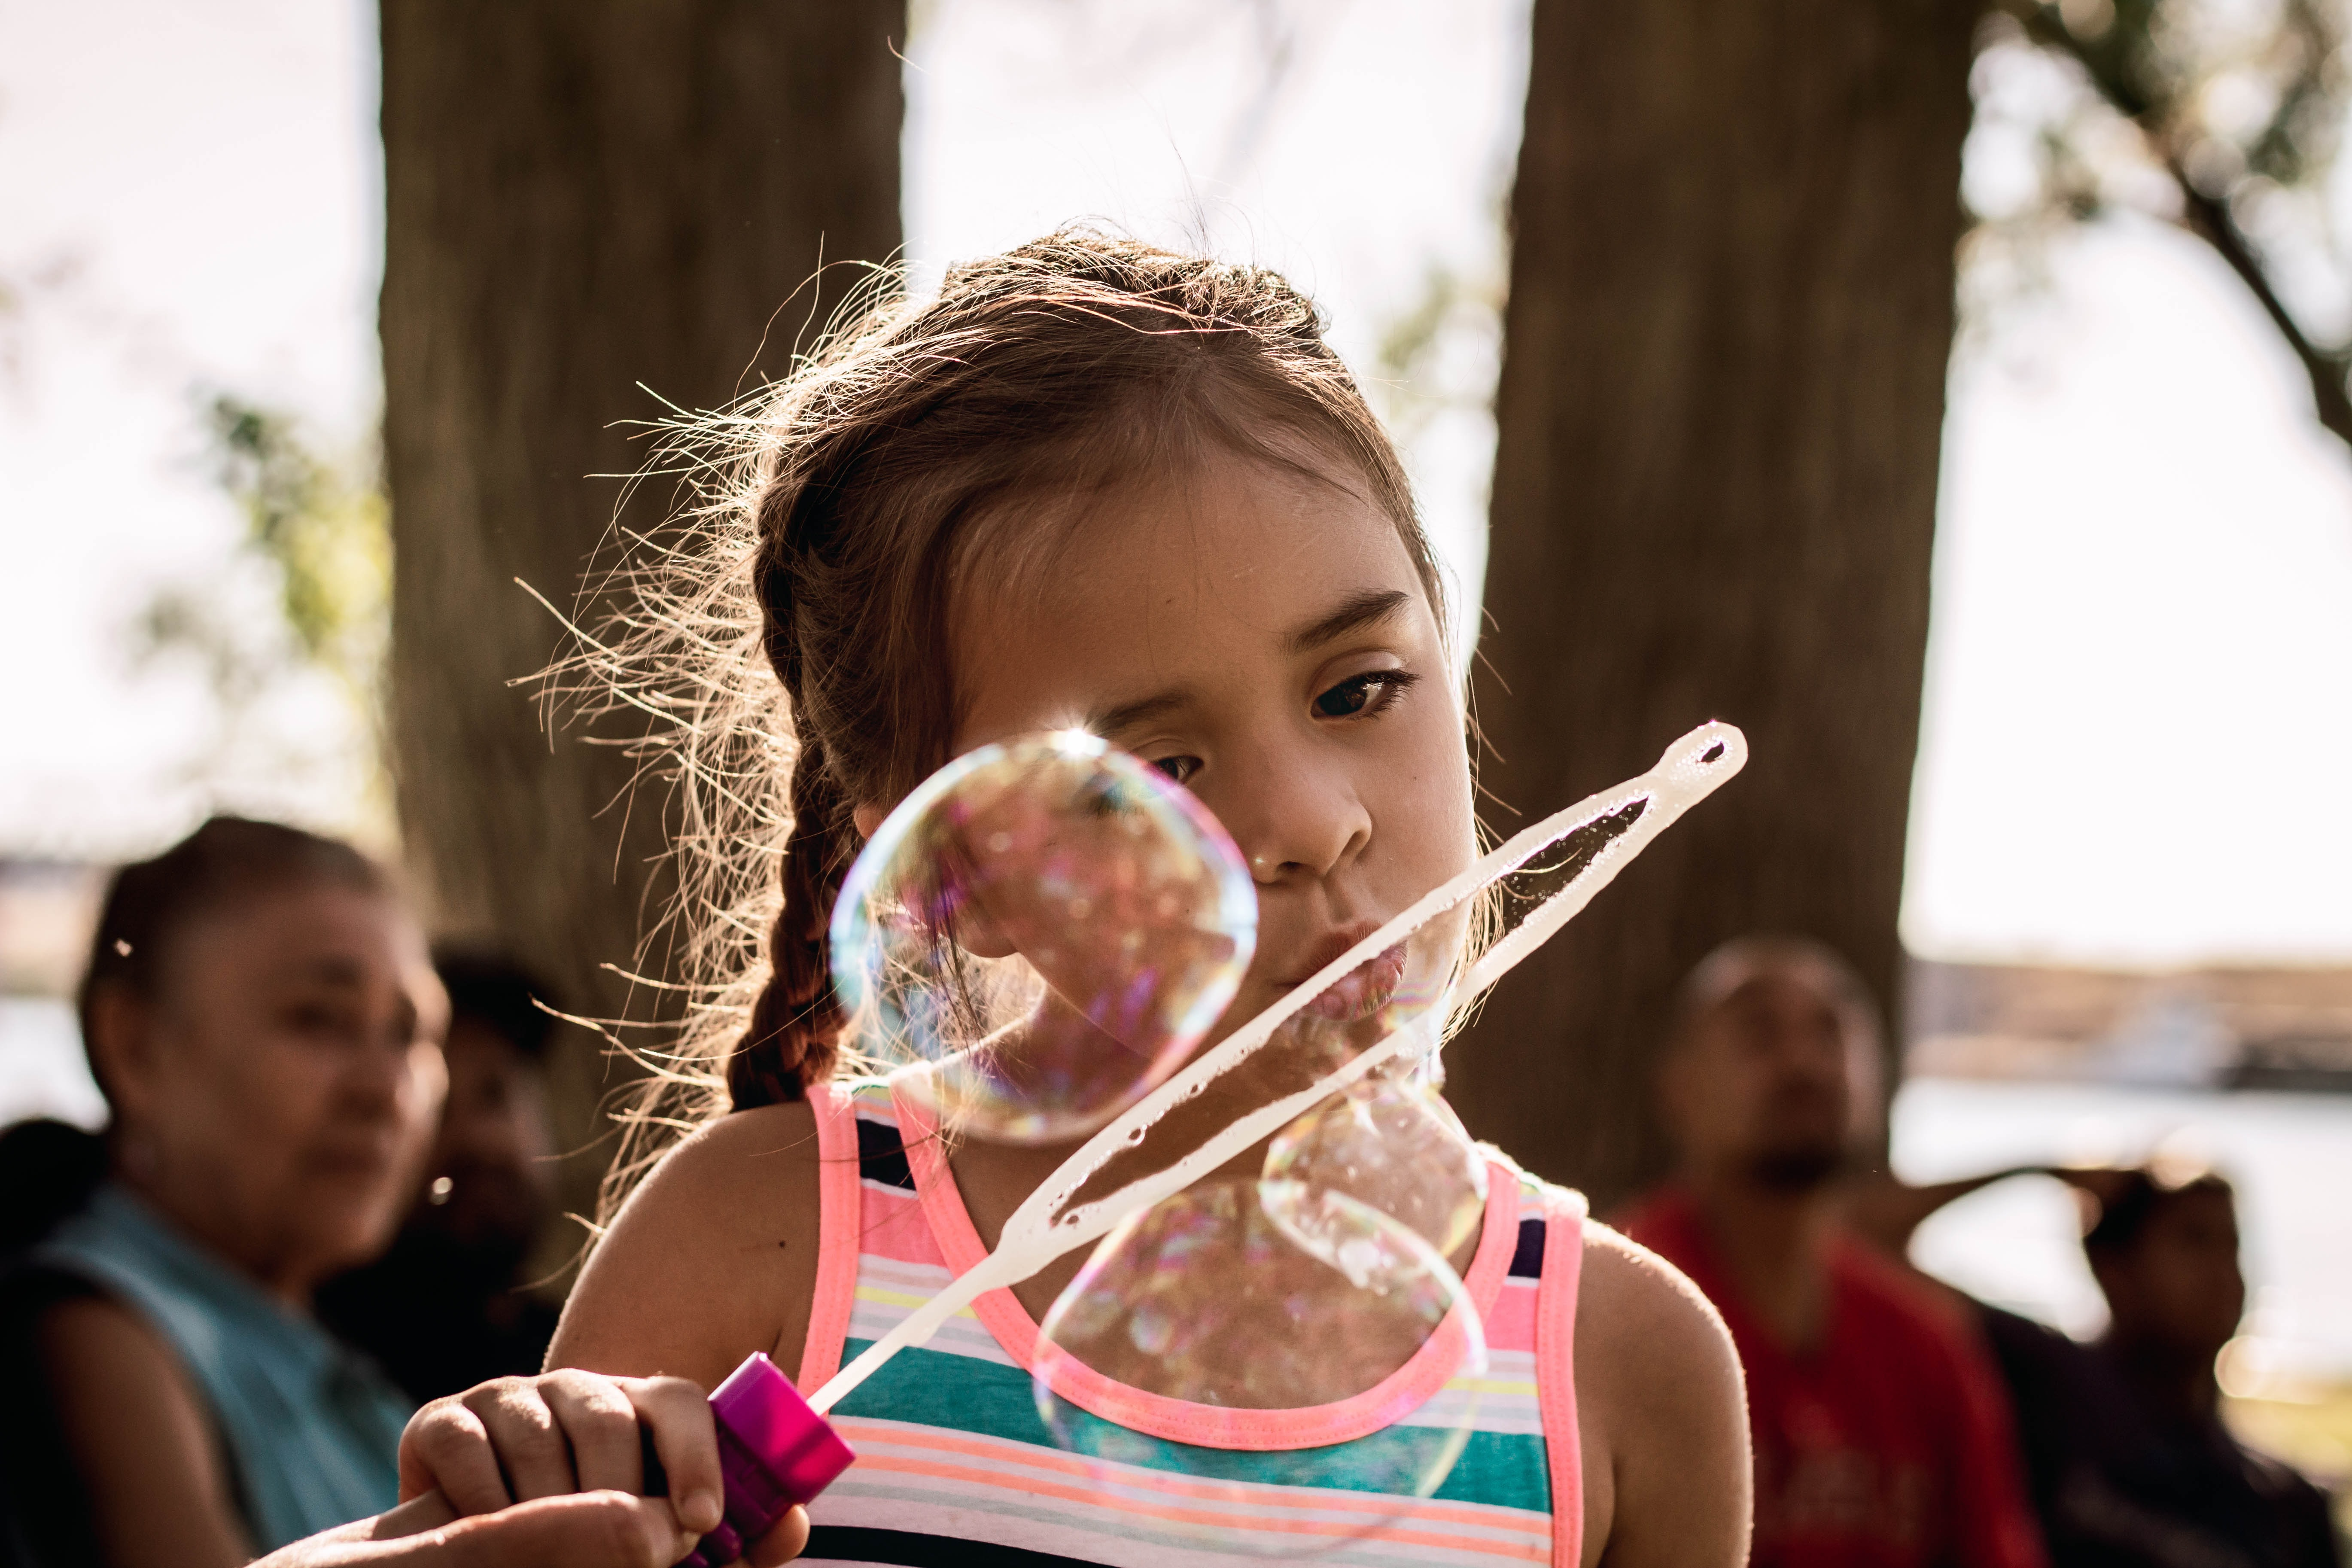 girl blowing bubble during daytime